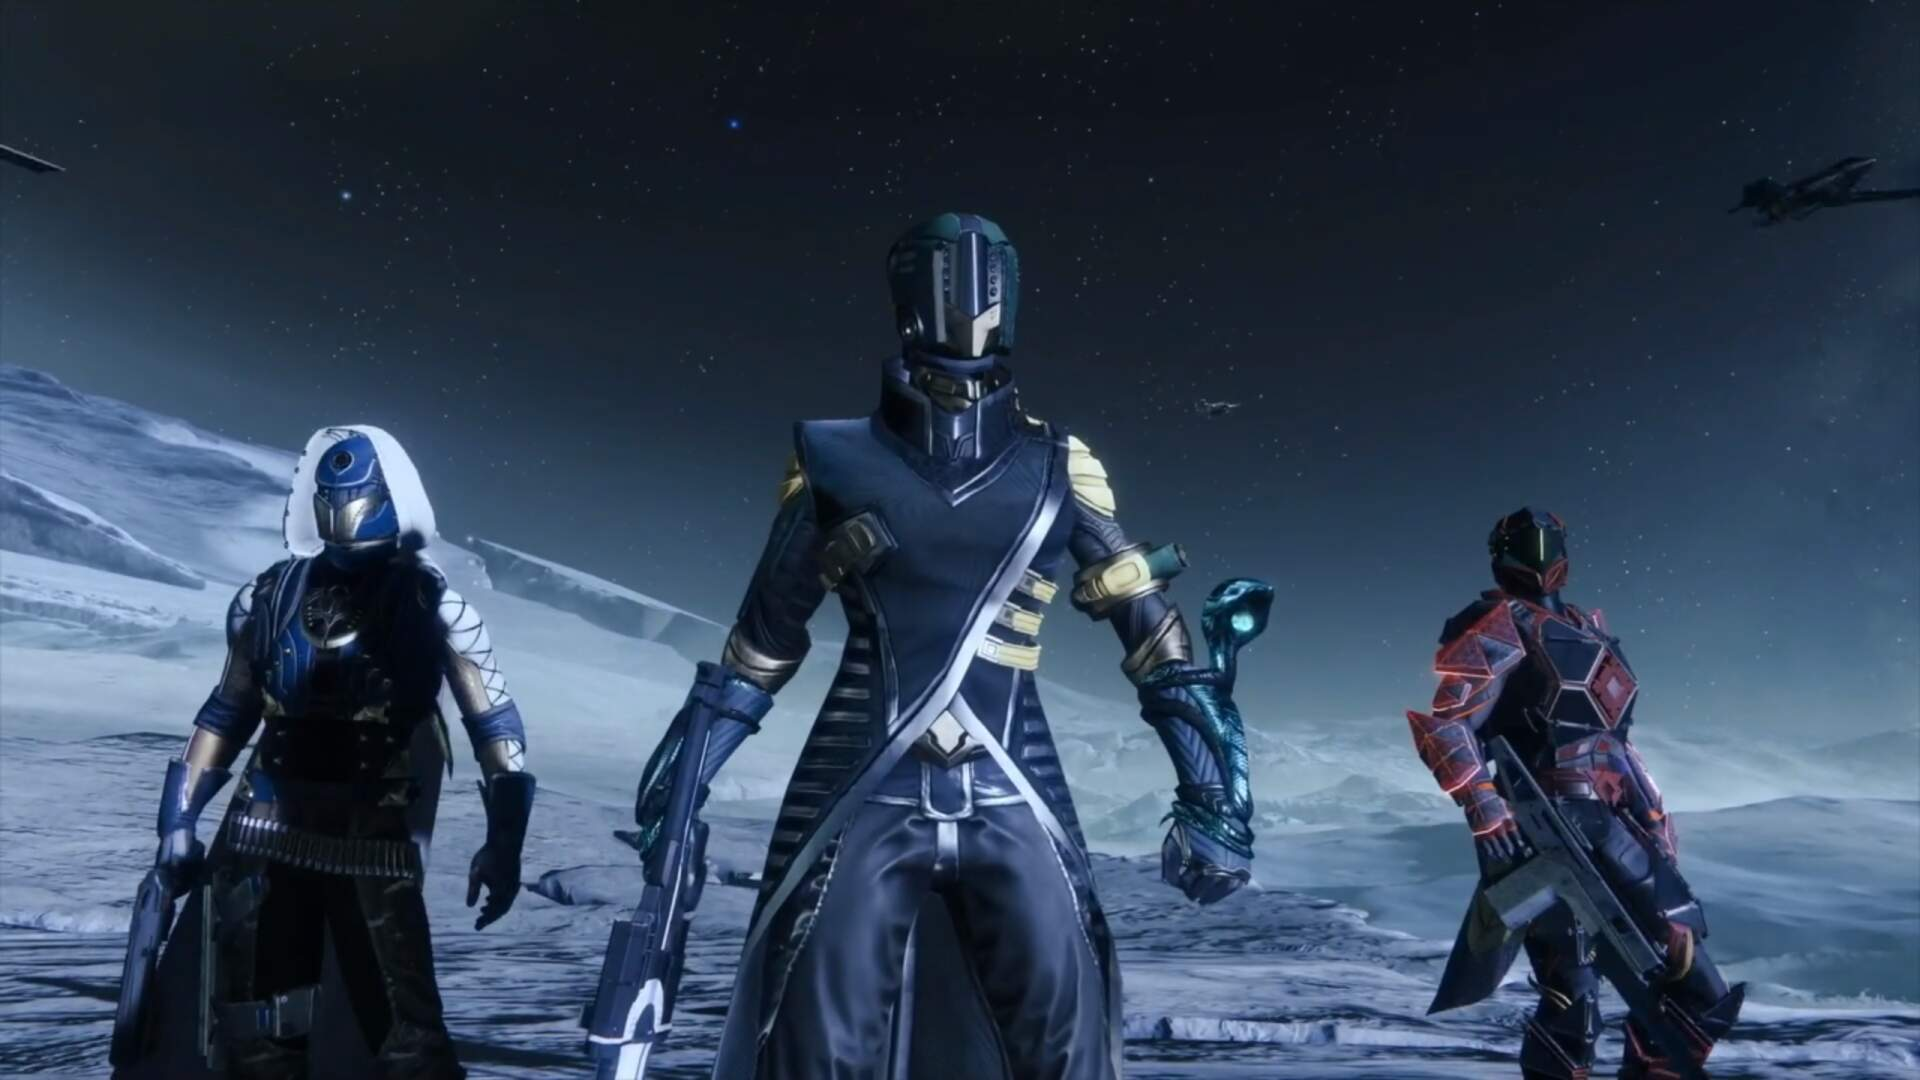 Destiny 2: Shadowkeep Needs More Time, And Bungie Now Has the Power to Give It That